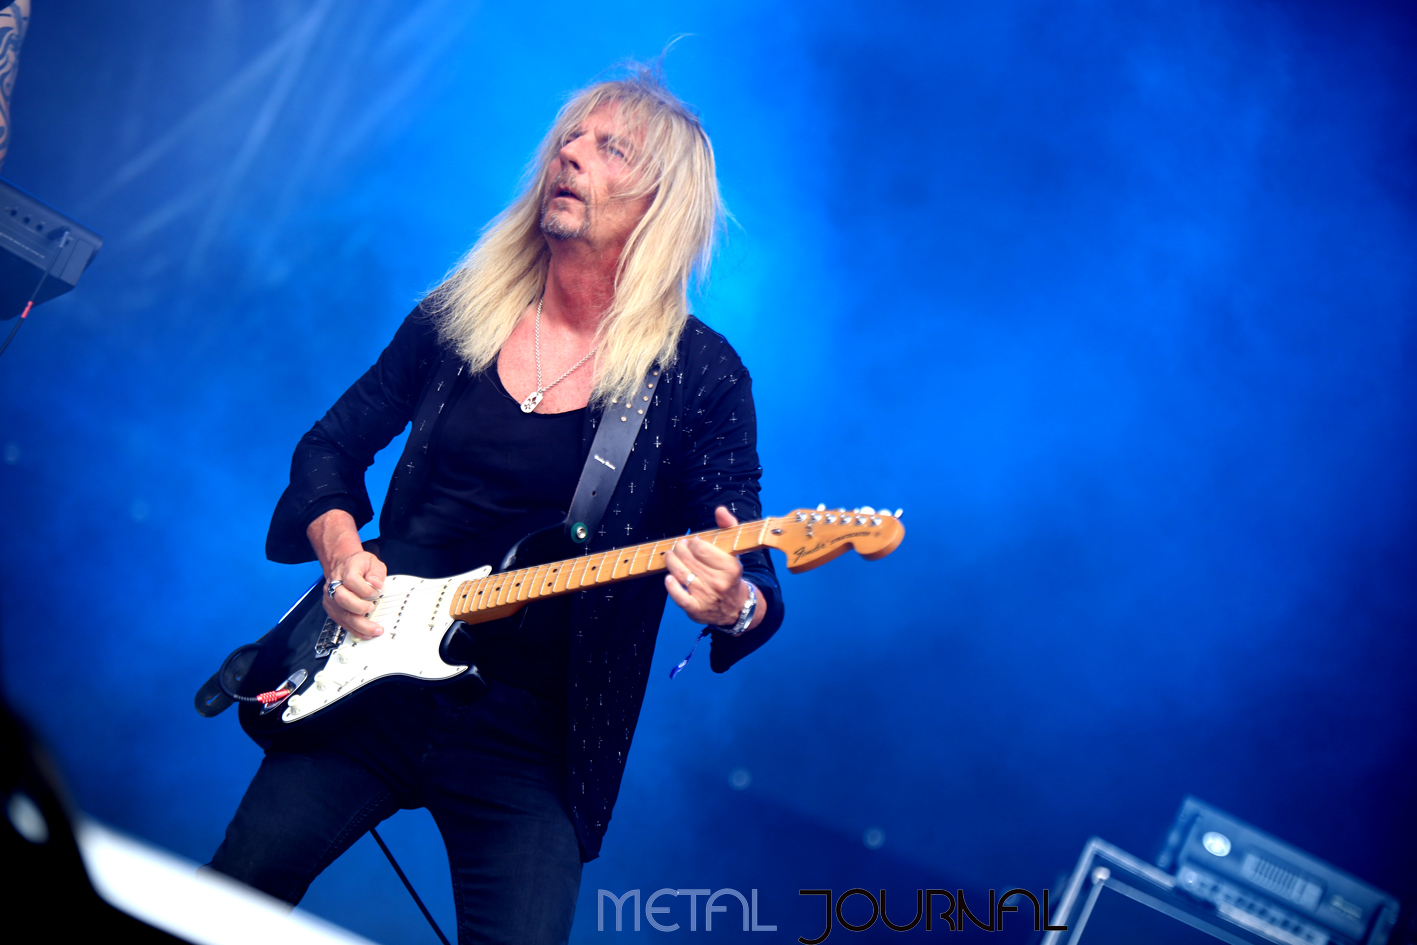 axel rudi pell rock fest 18 - metal journal pic 5